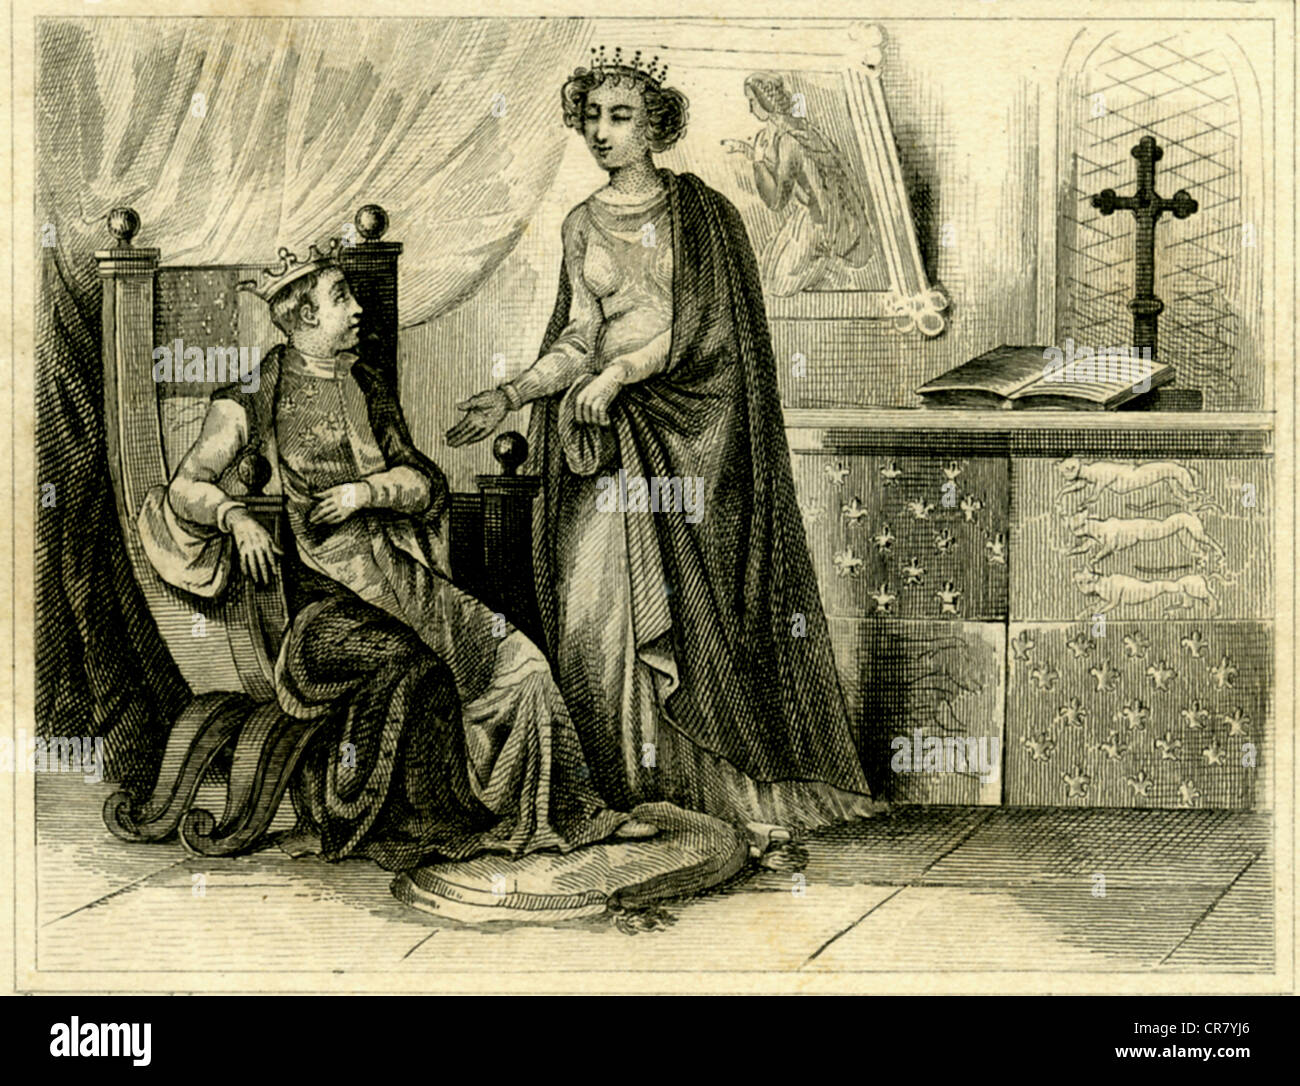 Joan and her son, England, Richard II kingdom, 1377, historical print from 1865 - Stock Image